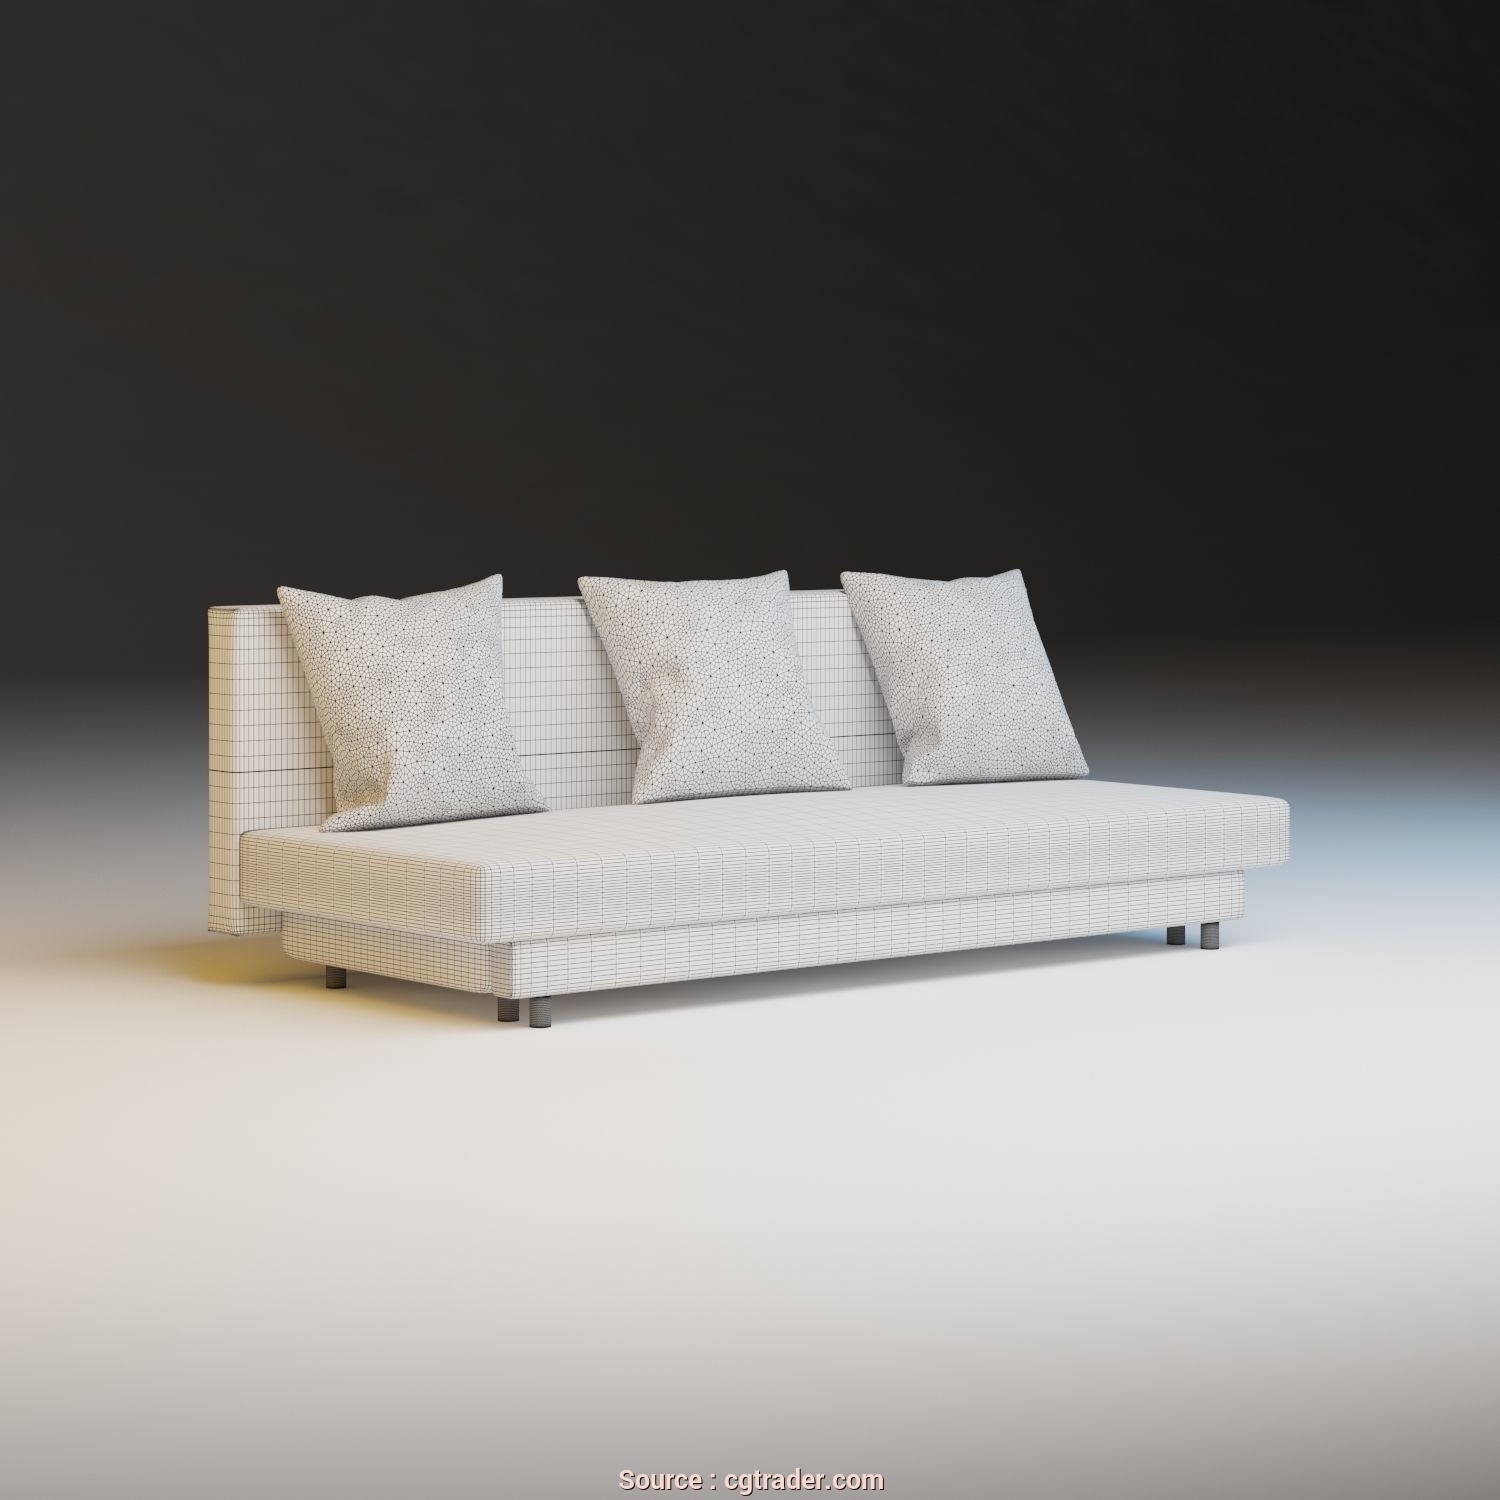 Asarum Ikea Recensioni, Loveable ... Ikea, Asarum Sofa 3D Model, Obj, 3Ds, 2